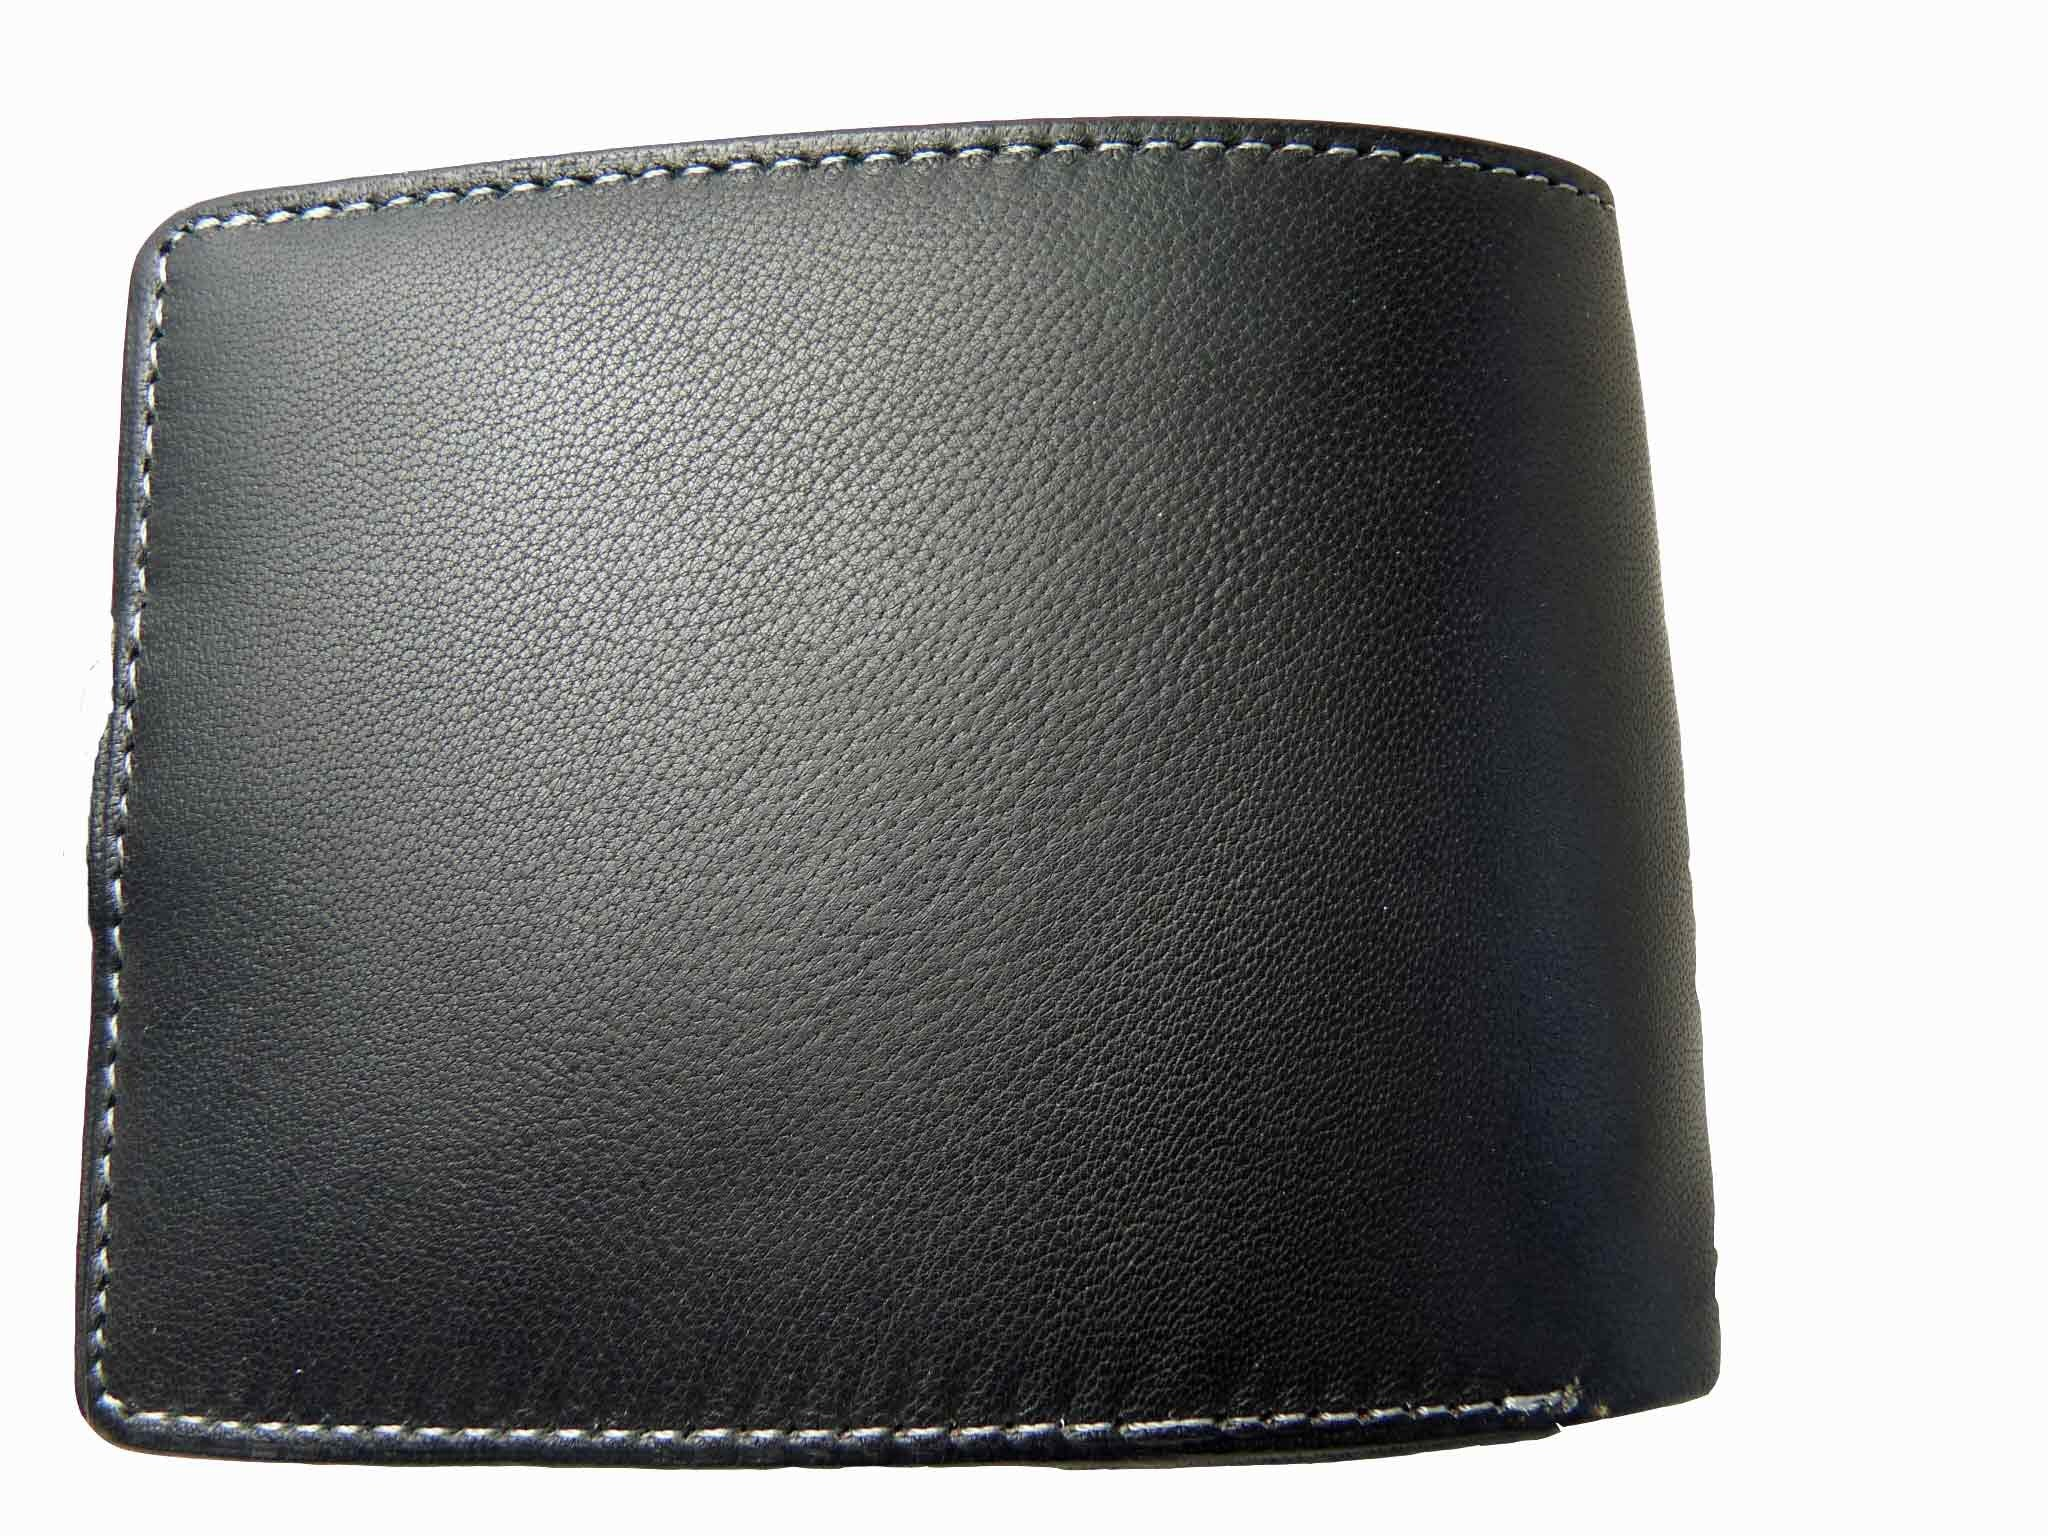 Mens Leather Wallet Credit Cards Black RL507 rear view